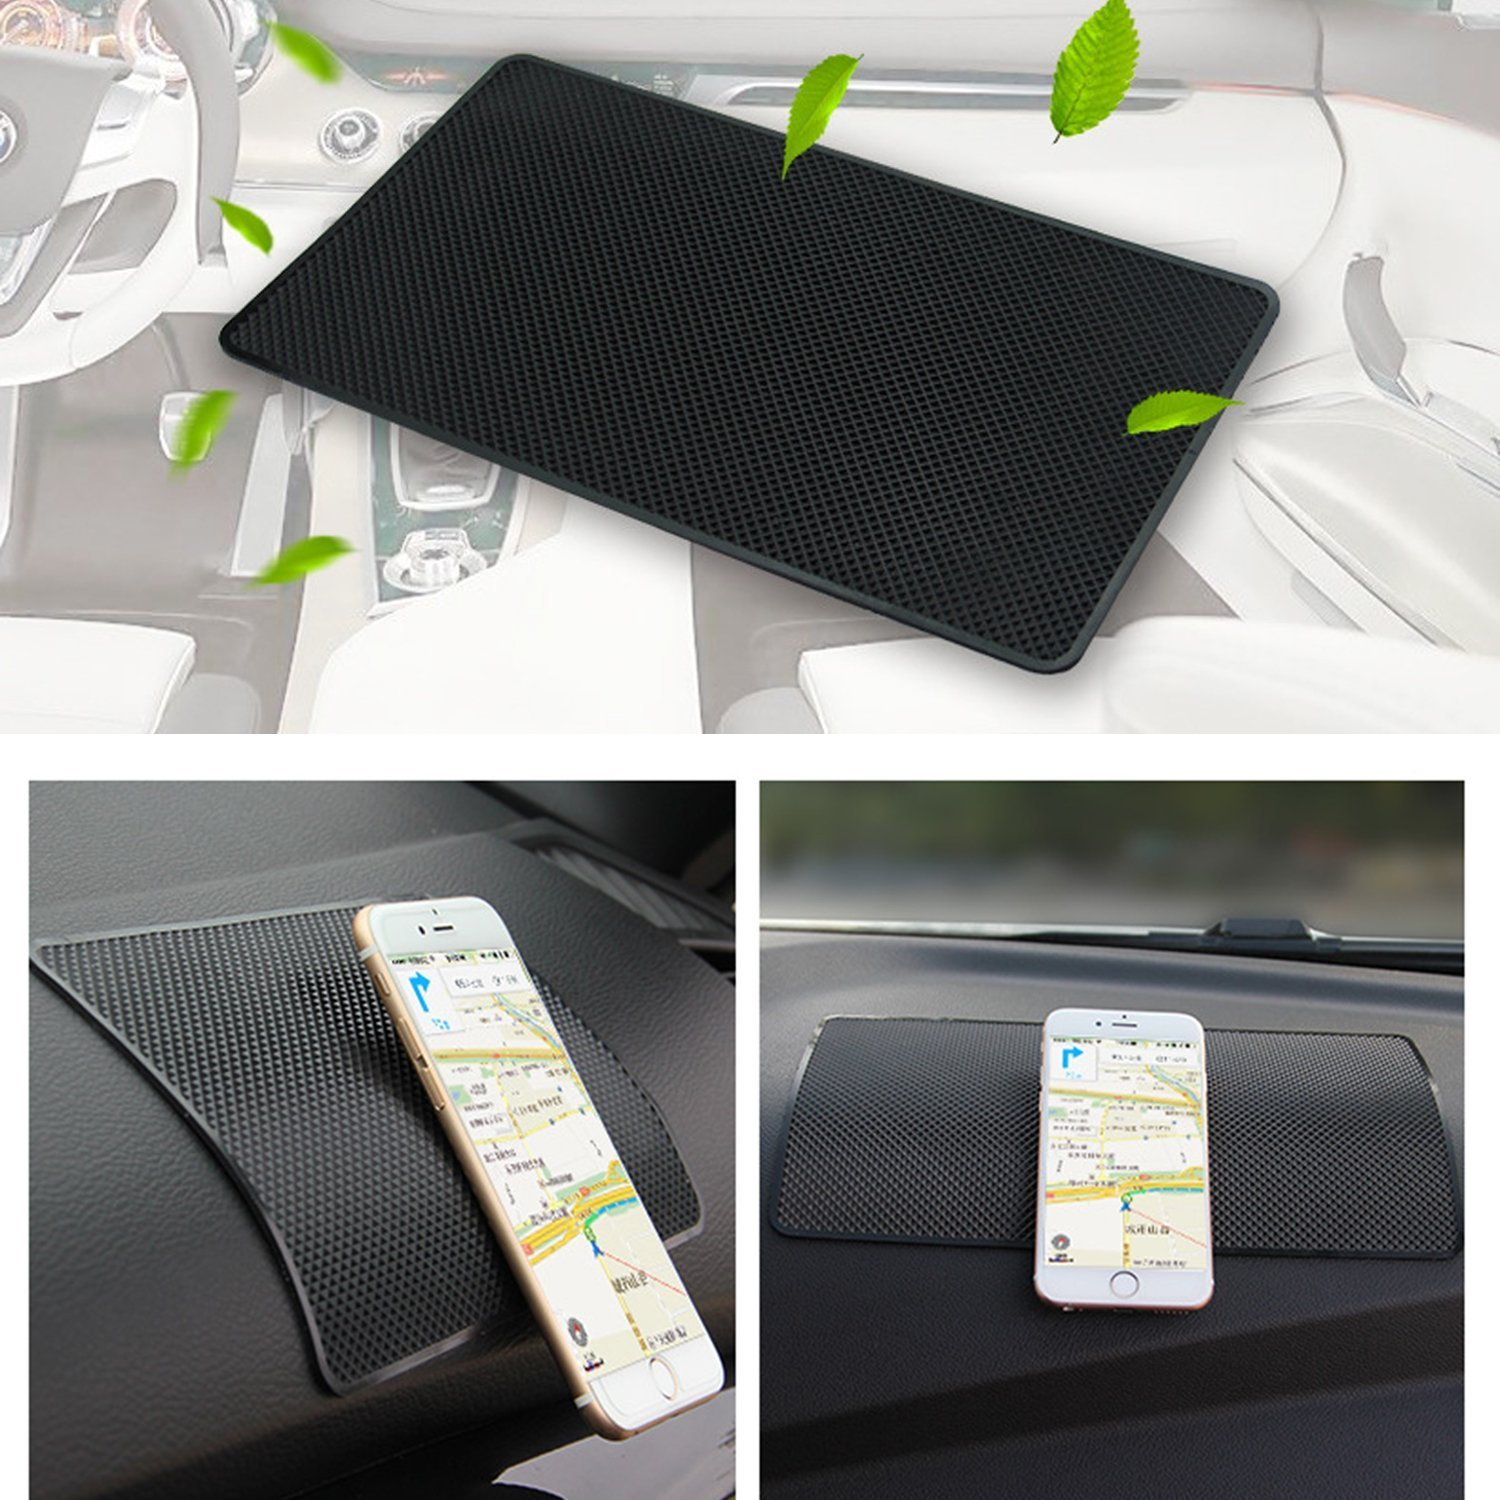 Without Logo CD and Other Smooth Items Electronic Devices Keyboard Auto Sport High Temperature Resistance Medium 7.5Inch Leather Surface Anti-Slip Non-Slip Mat Car Dashboard Pad Mat for Phone